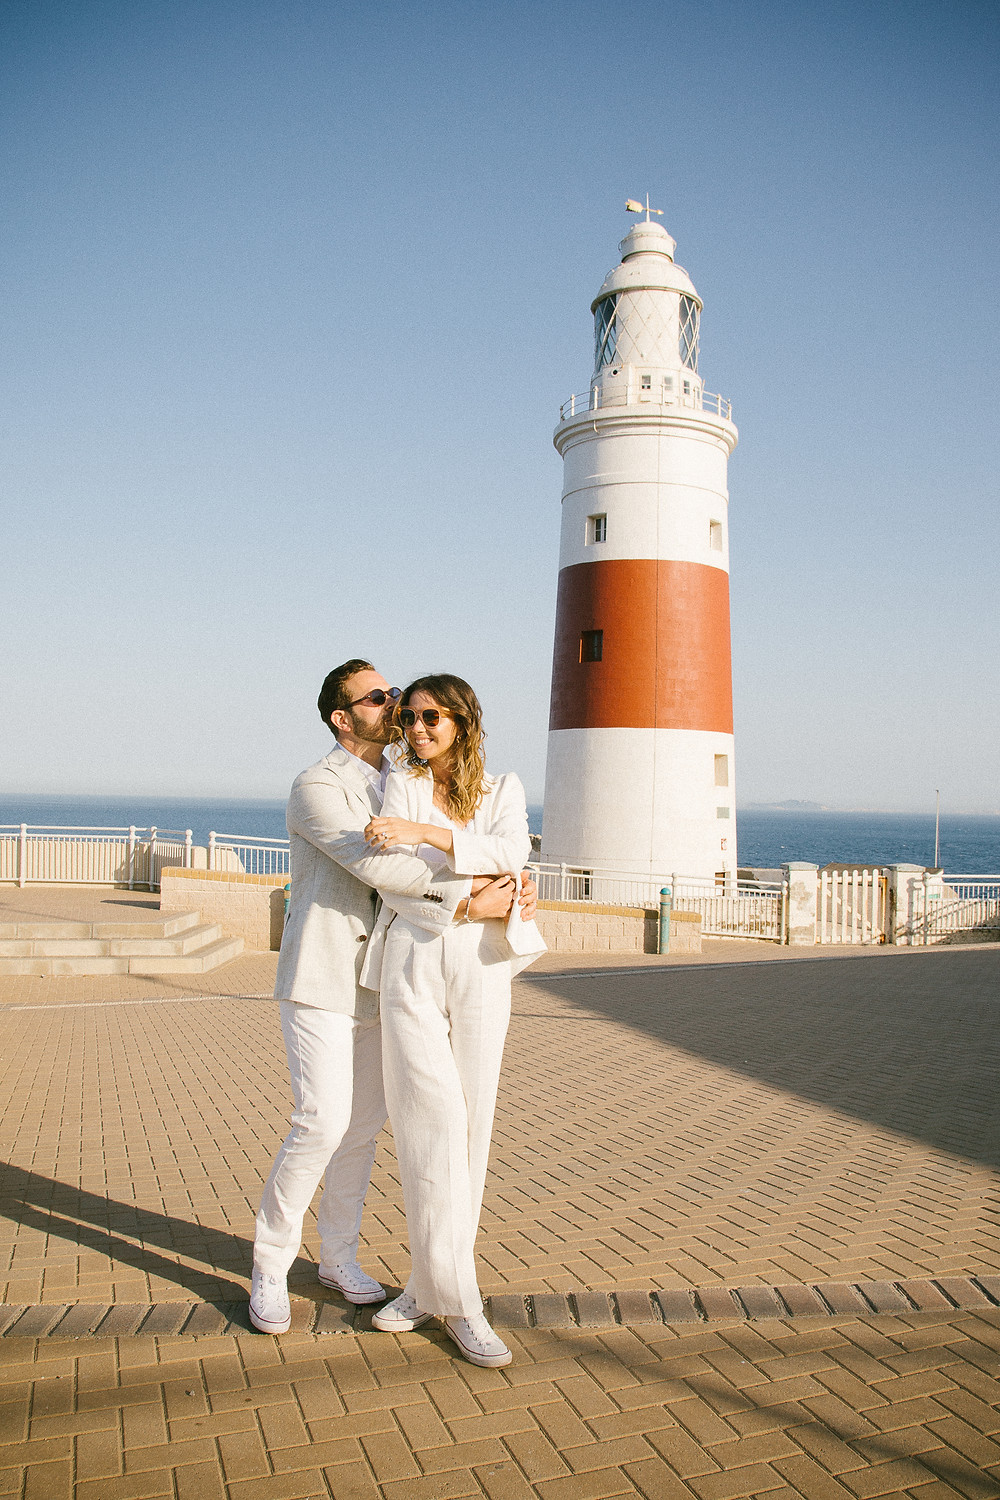 Gibraltar Registry office,Cool elopement wedding outfits Gibraltar John Lennon and Yoko style